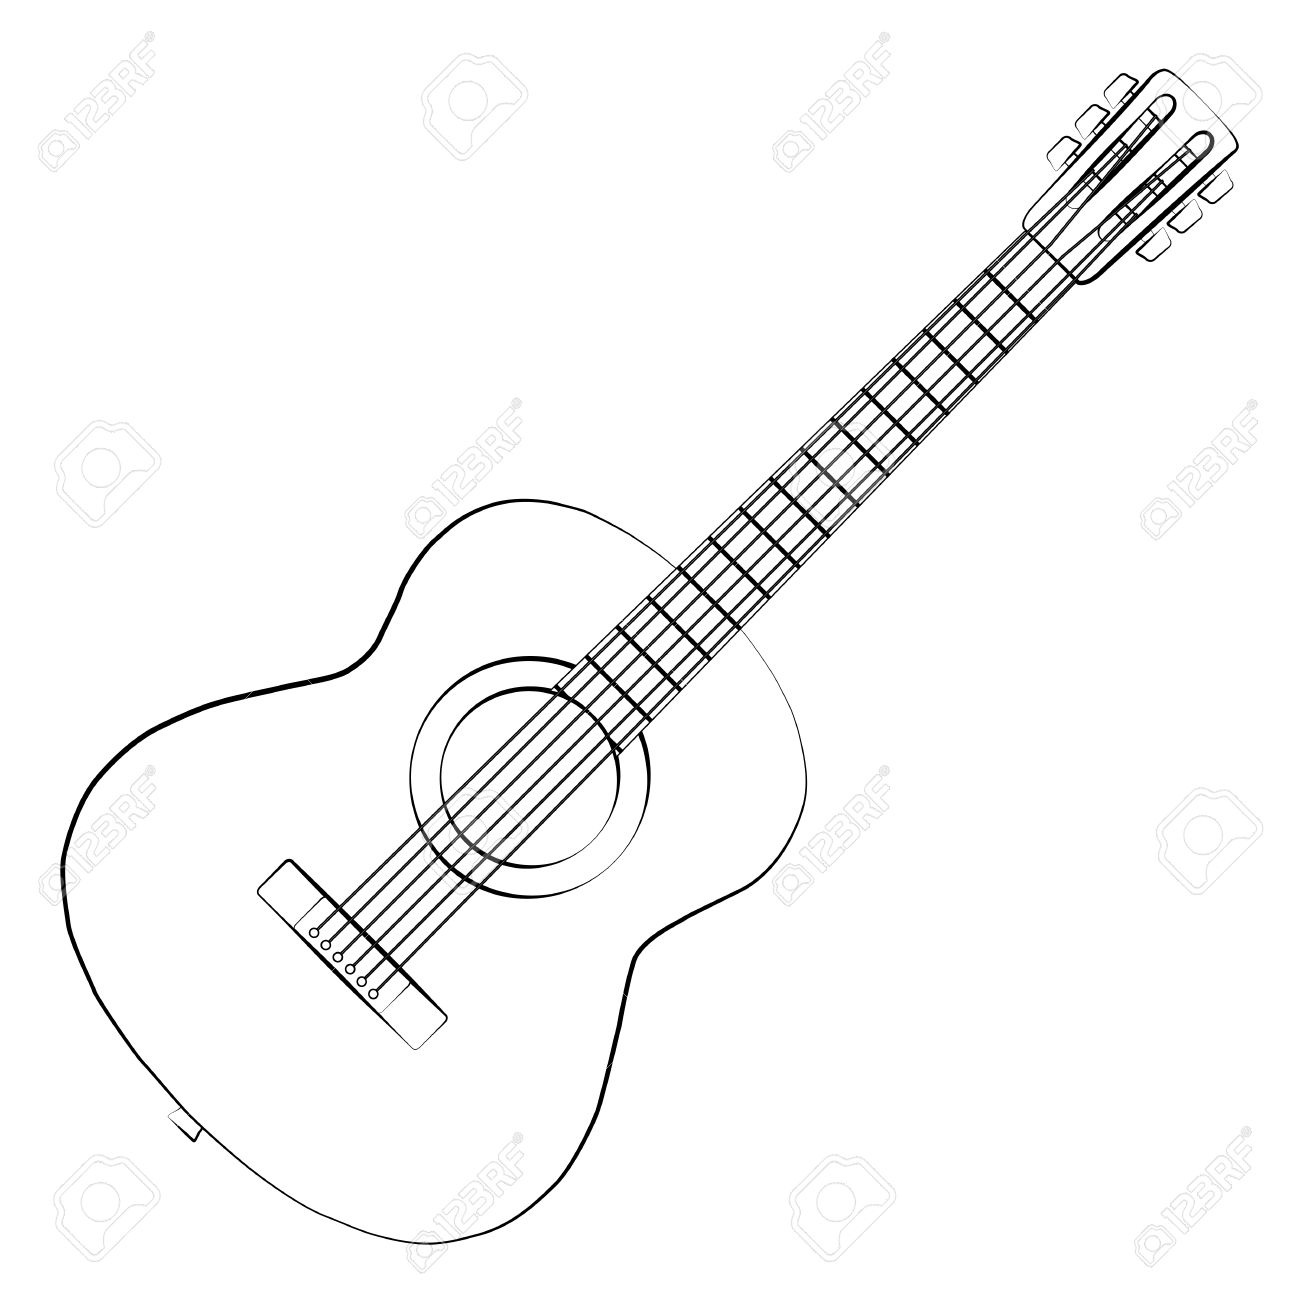 Black And White Guitar Drawing At Getdrawings